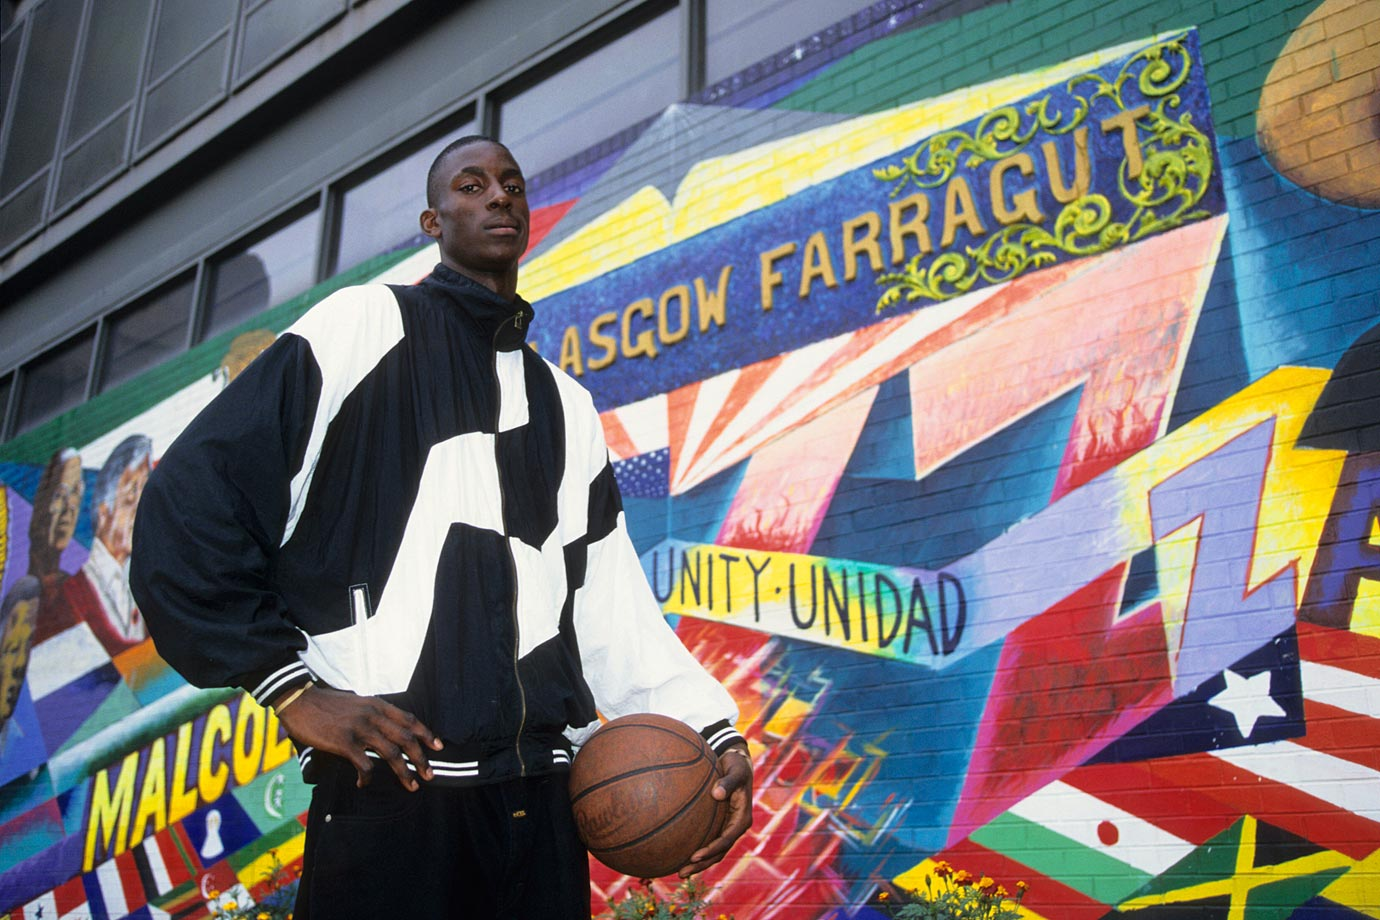 Kevin Garnett poses outside of Farragut Career Academy. KG played for Mauldin High in South Carolina for his first three seasons but transferred to Farragut before his senior year.